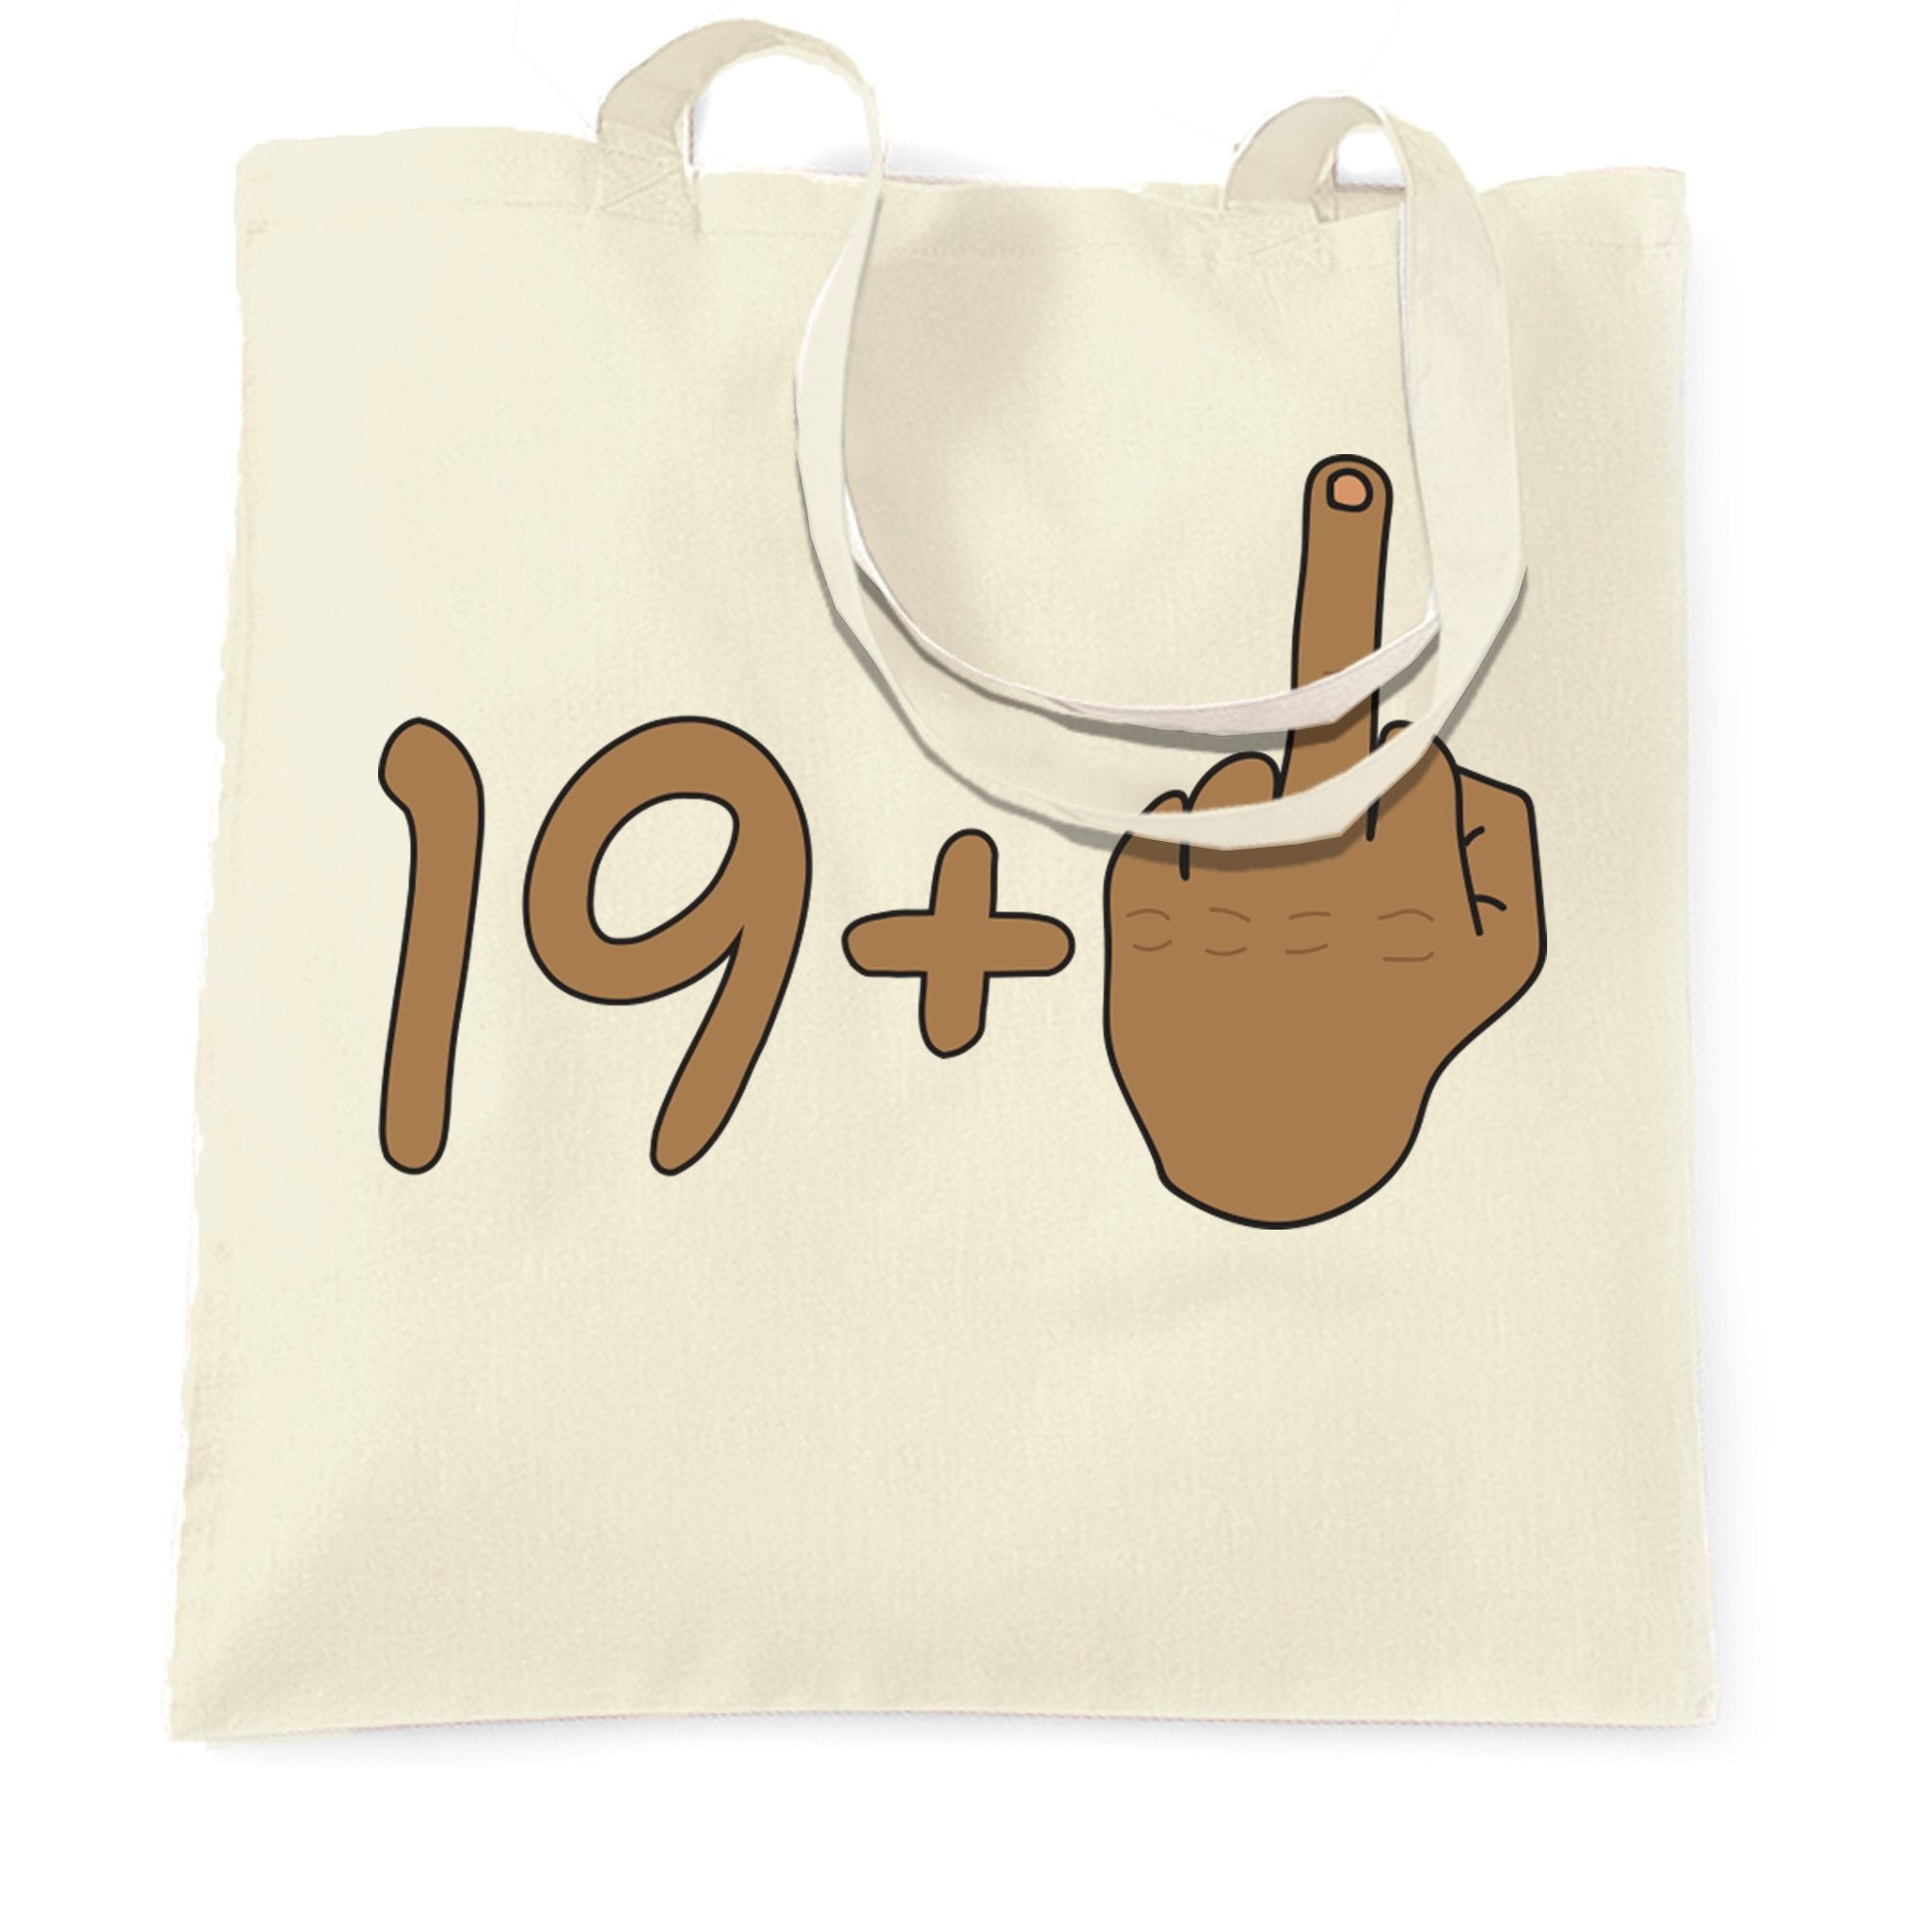 Rude 20th Birthday Tote Bag Tanned Middle Finger